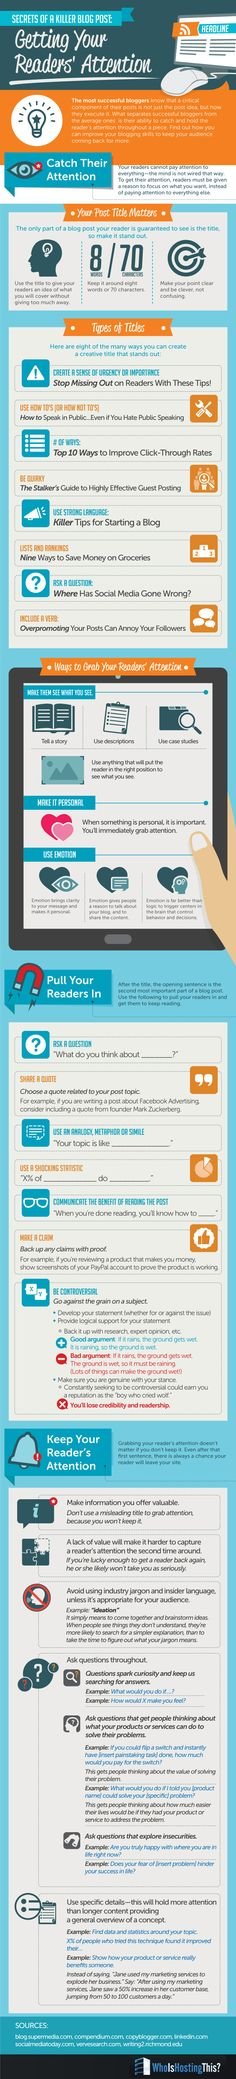 #Infographic How to Write a Successful #Blog #Post